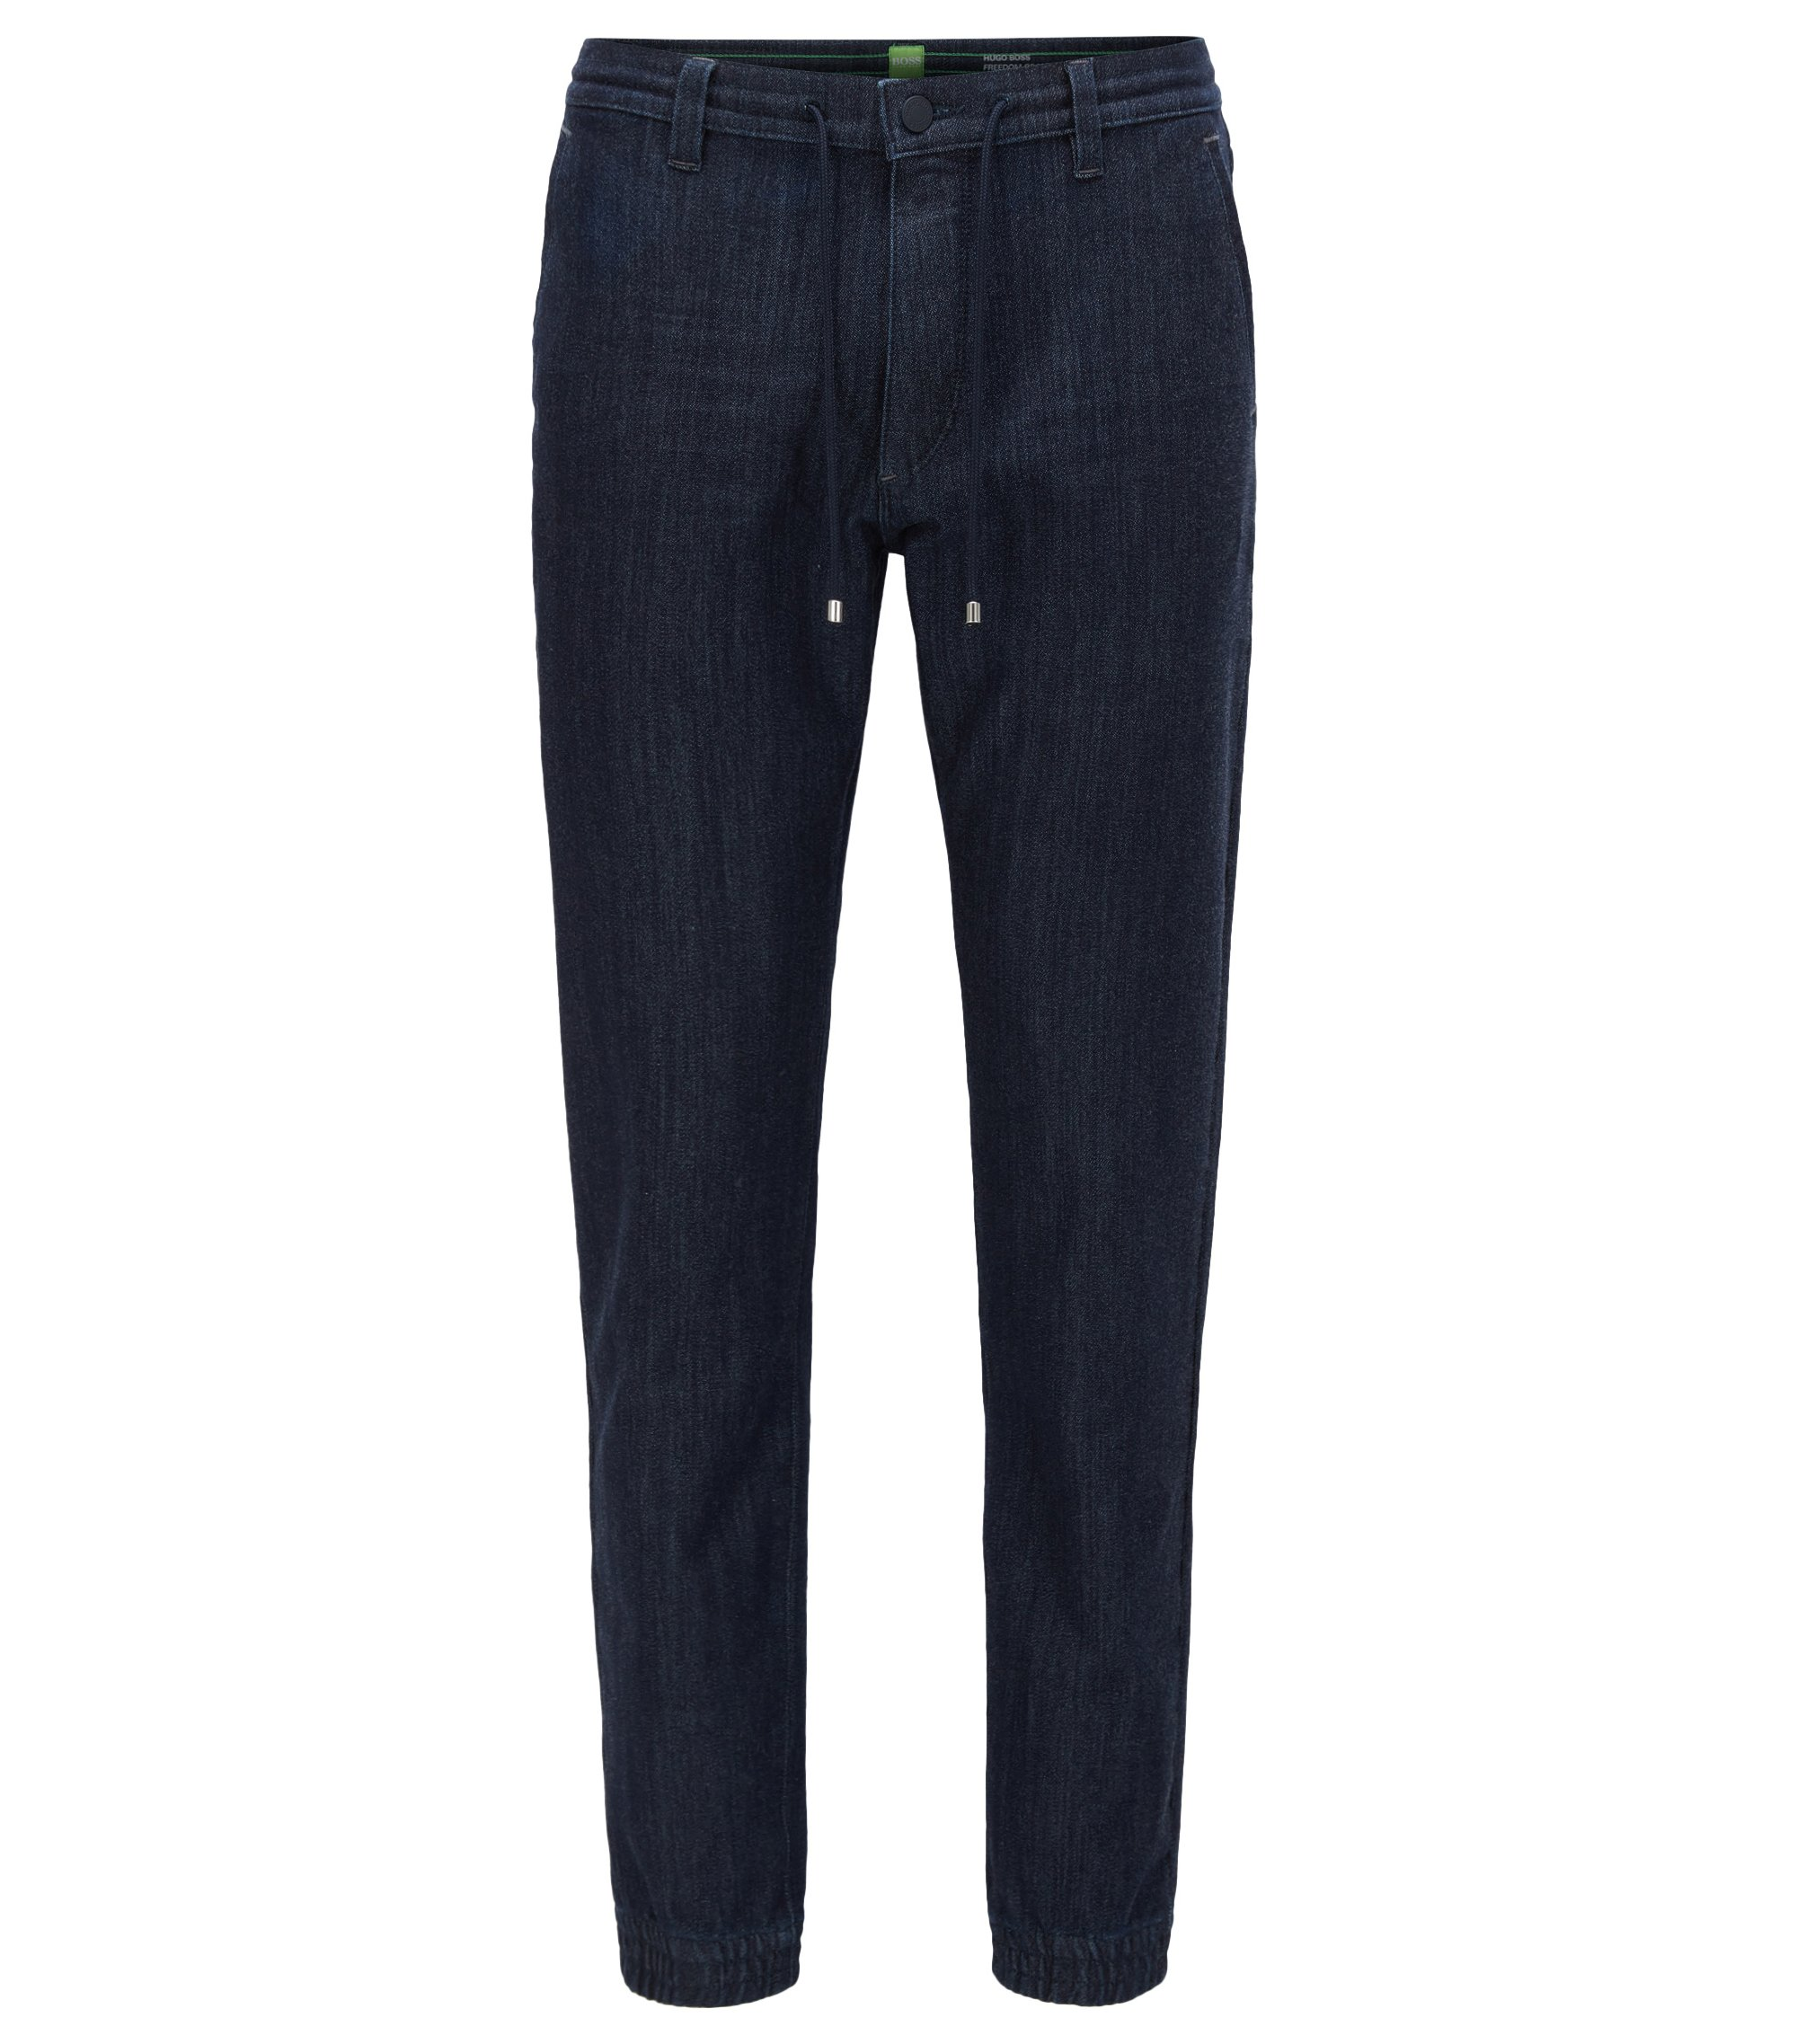 Pantalones tapered fit en denim de punto, Azul oscuro